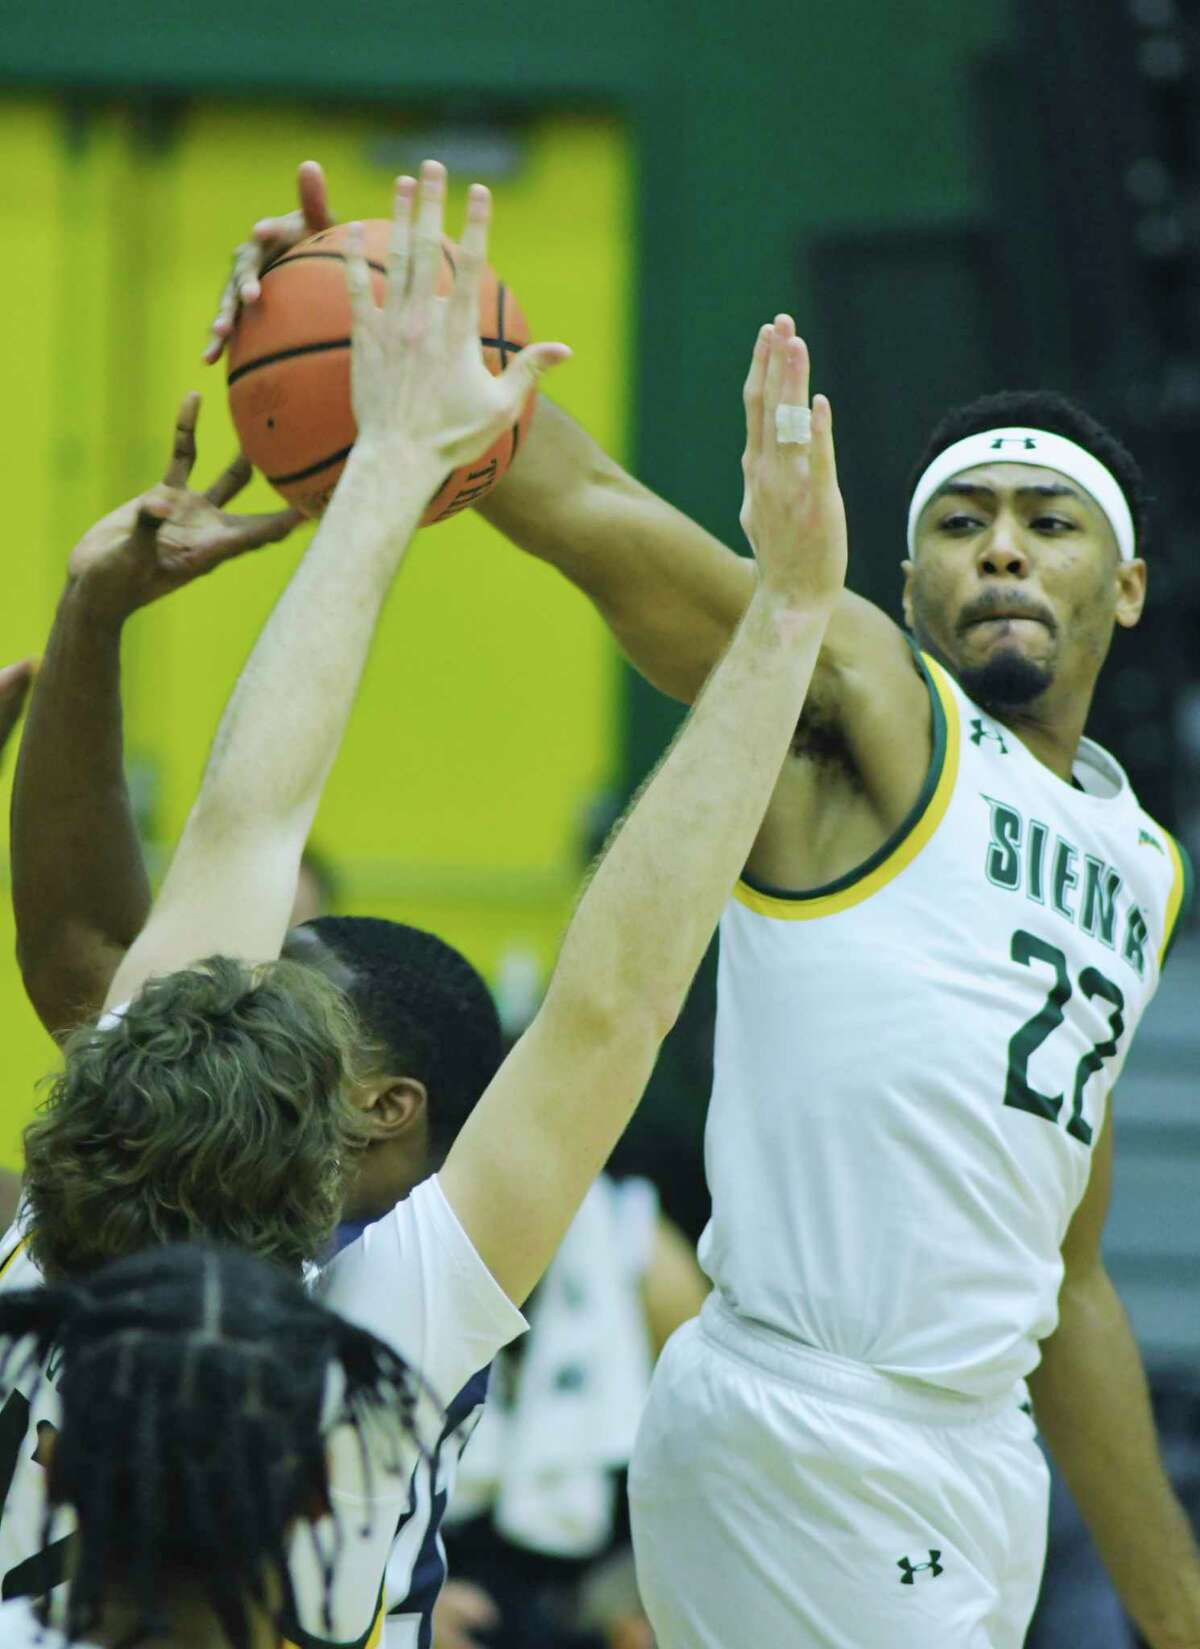 Jalen Pickett of Siena knocks the ball out of the hand of a Monmouth player during their game at the Alumni Recreation Center on the campus of Siena College, on Sunday, Jan. 3, 2021, in Loudonville, N.Y. (Paul Buckowski/Times Union)